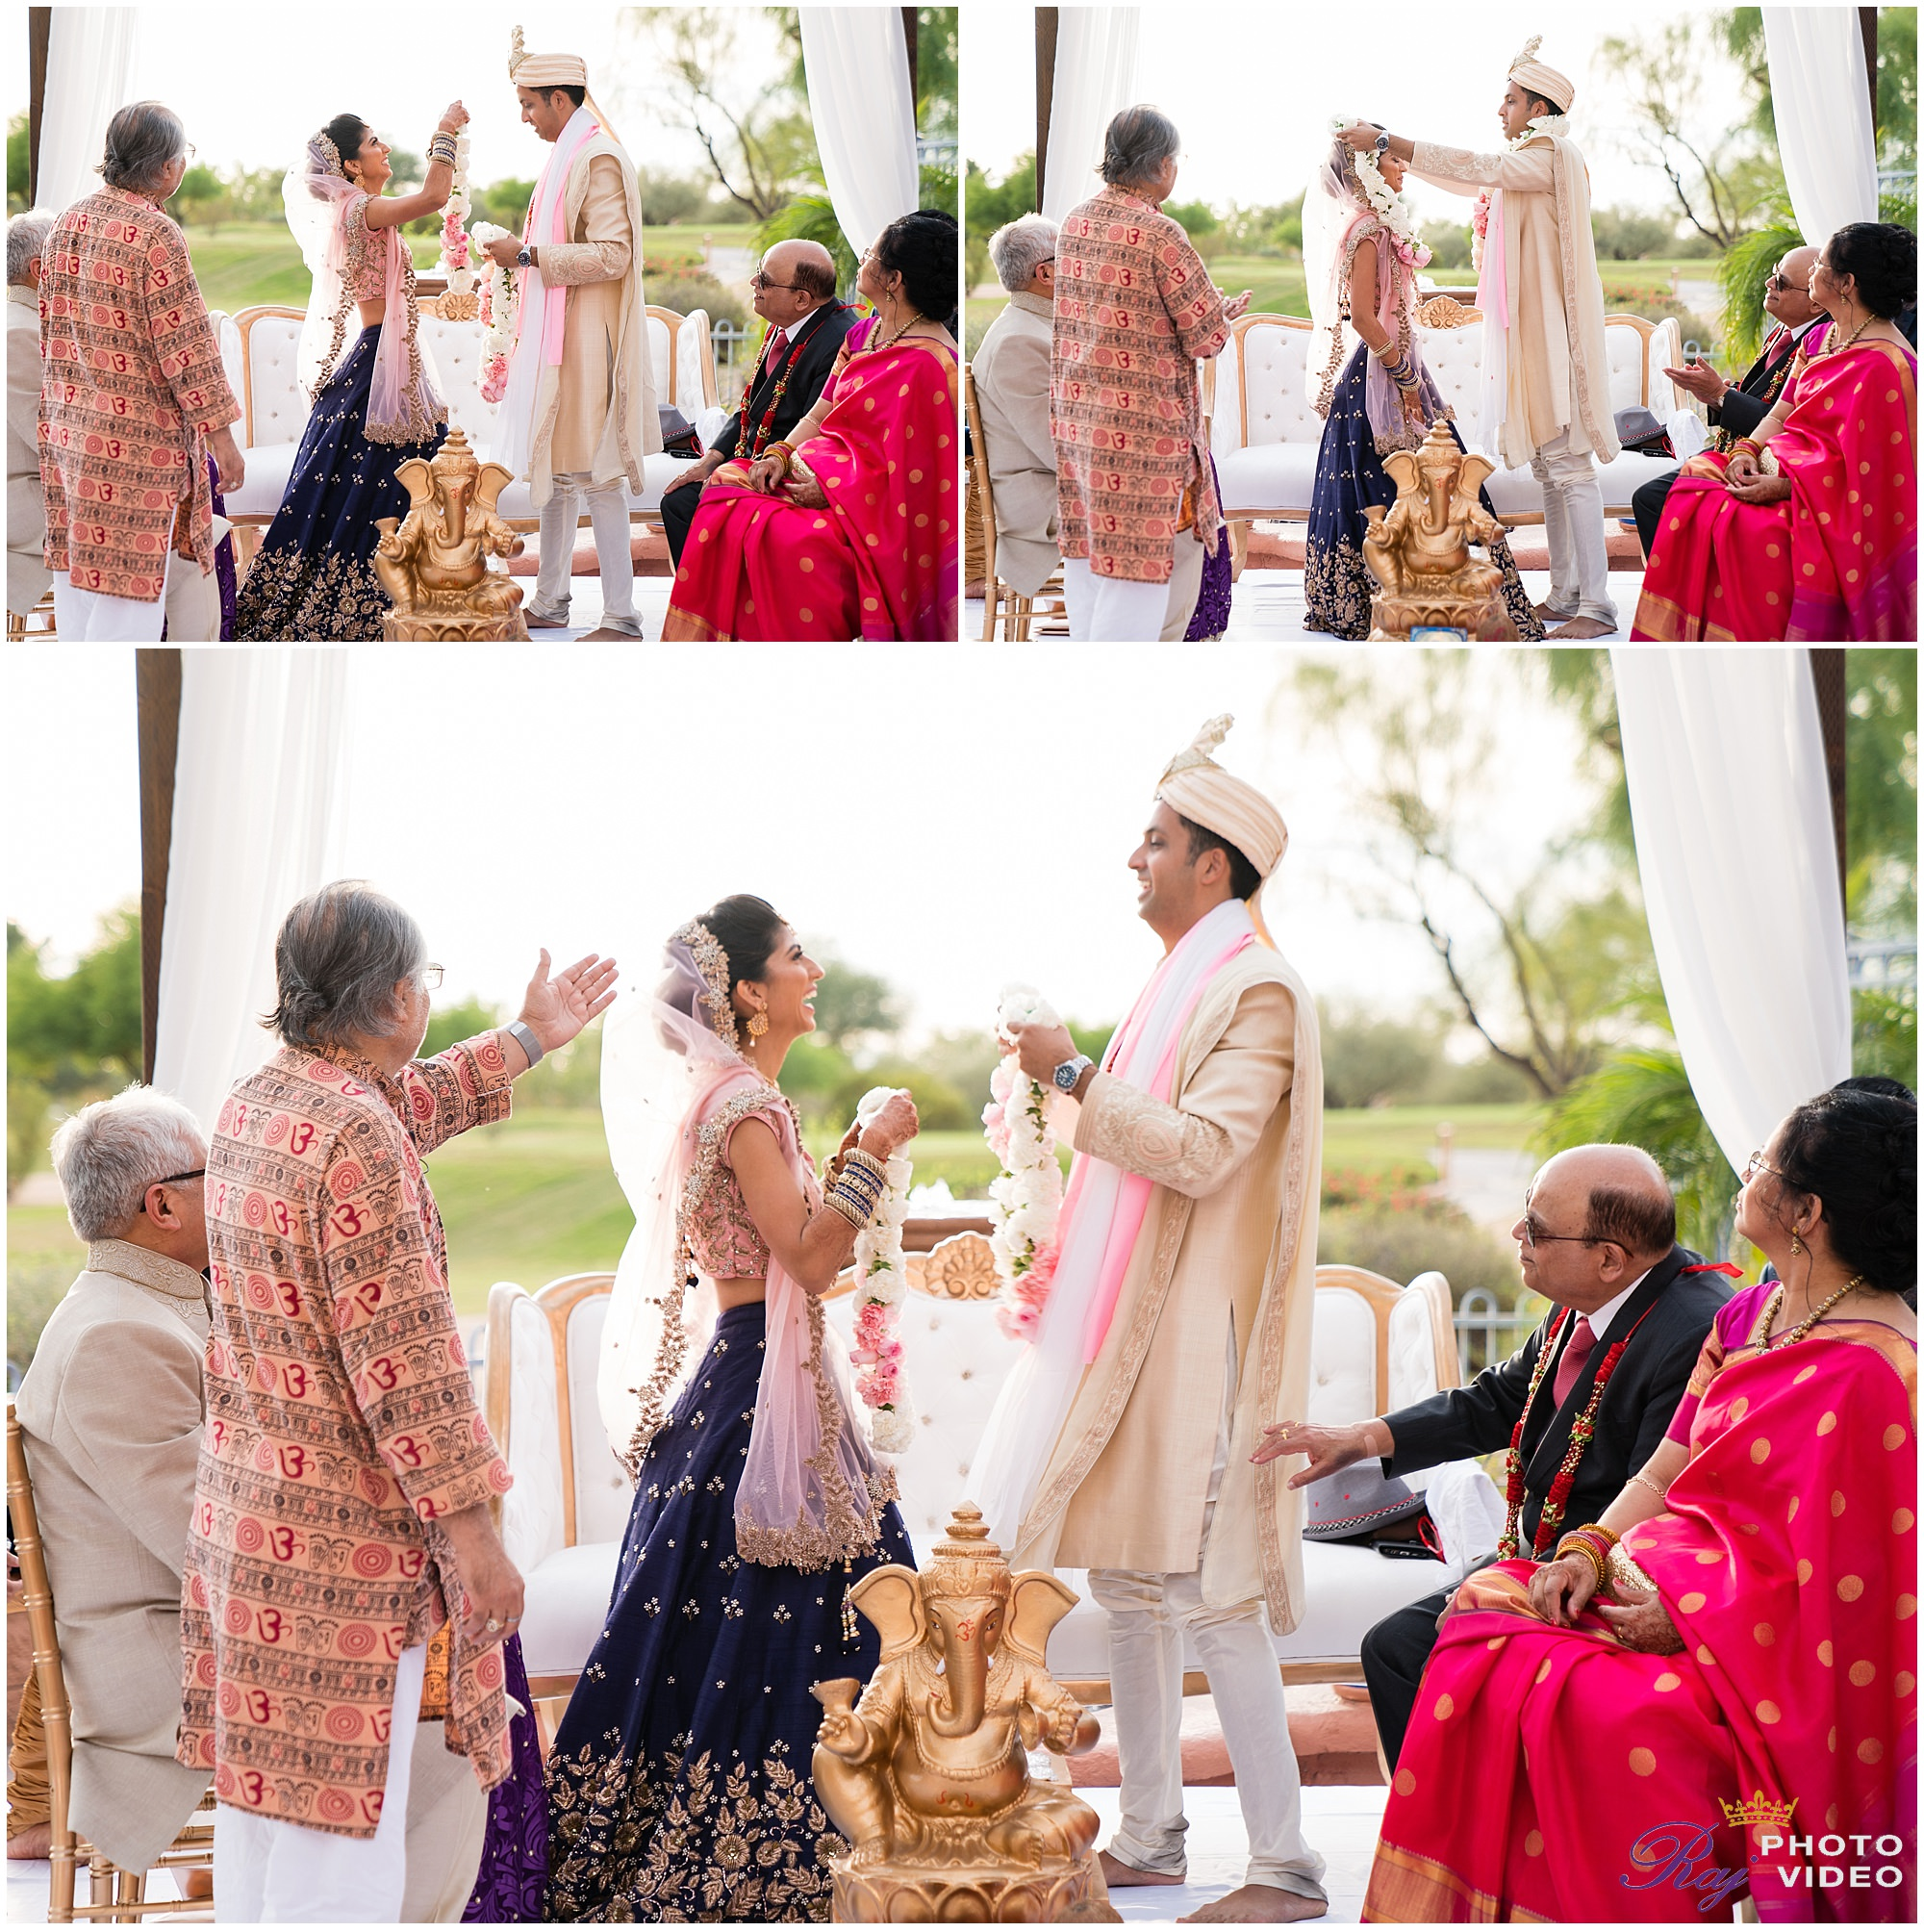 Scottsdale_Marriott_at_McDowell_Mountains_Arizona_Indian_Wedding_Sapna_Shyam-51.jpg